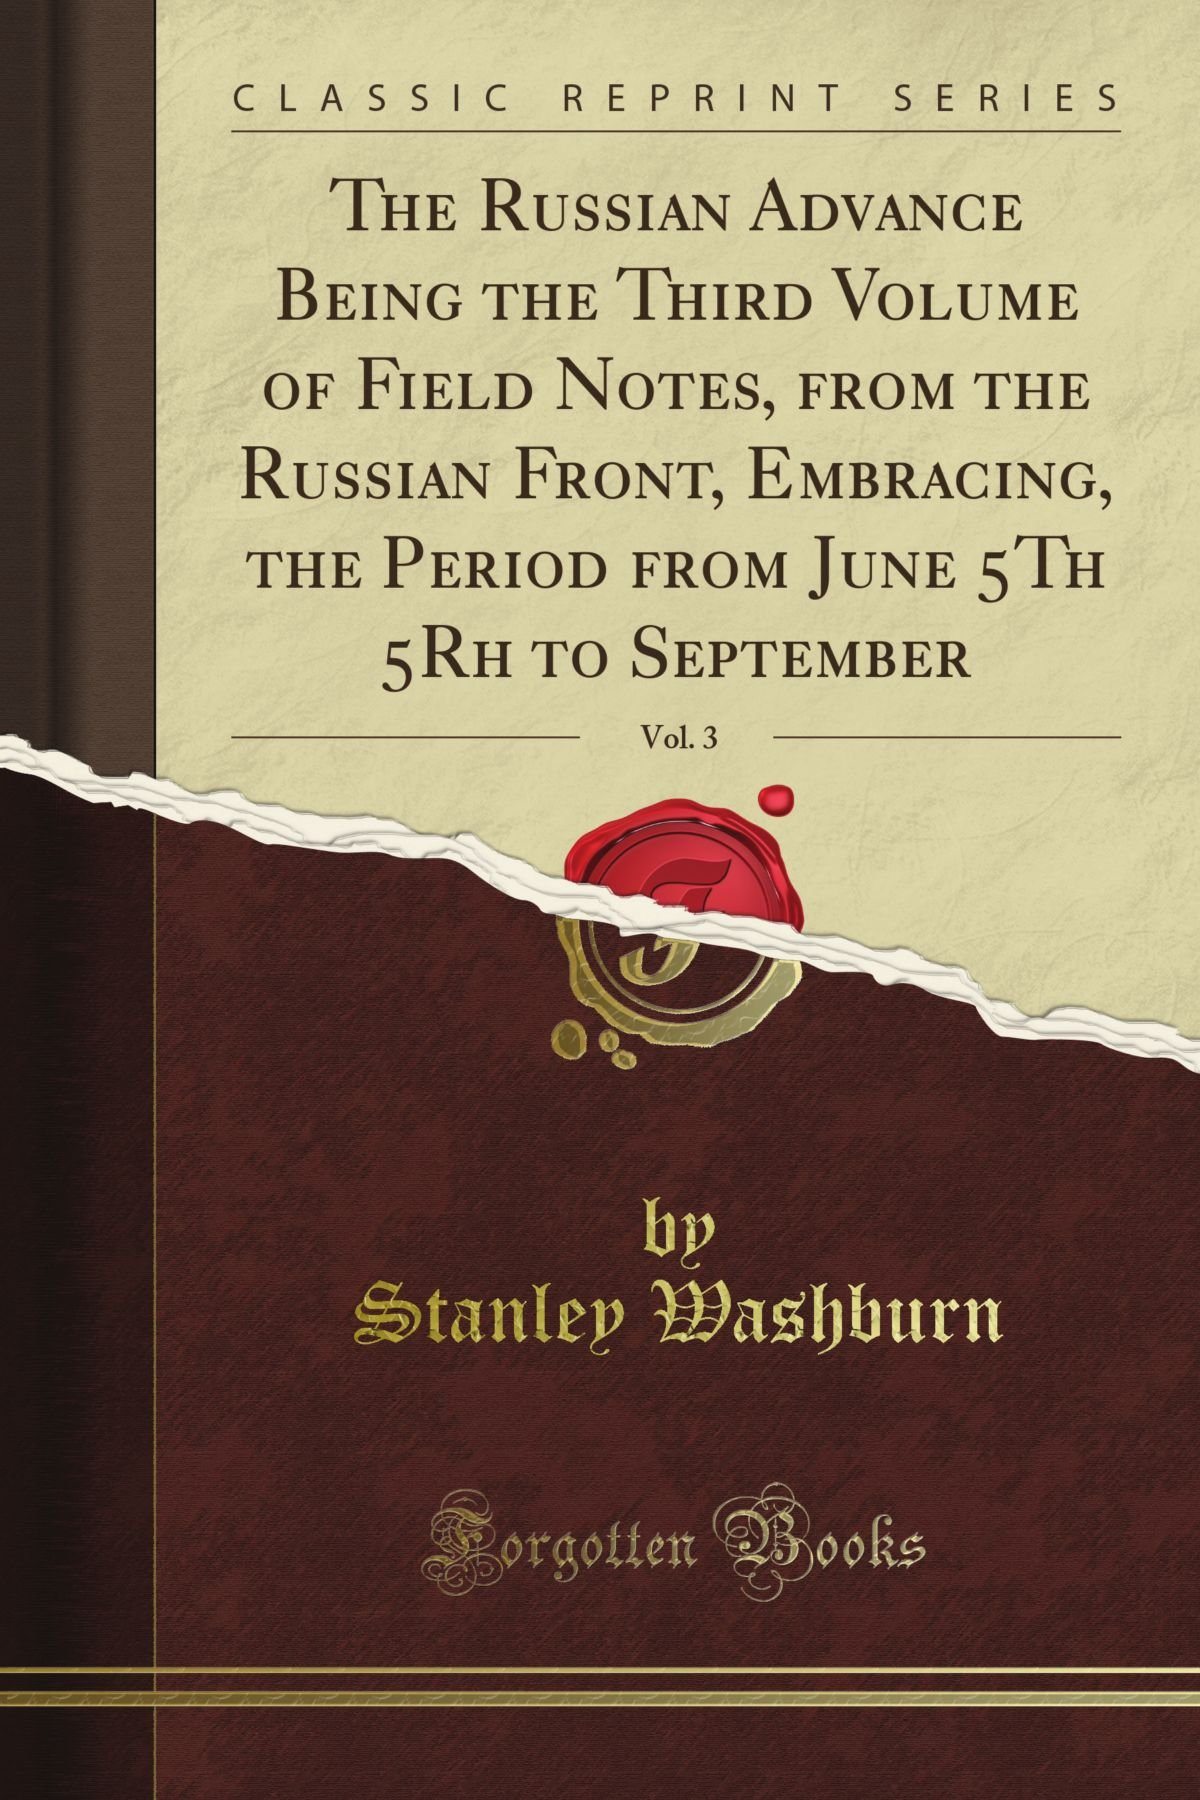 The Russian Advance Being the Third Volume of Field Notes, from the Russian Front, Embracing, the Period from June 5Th 5Rh to September, Vol. 3 (Classic Reprint) pdf epub